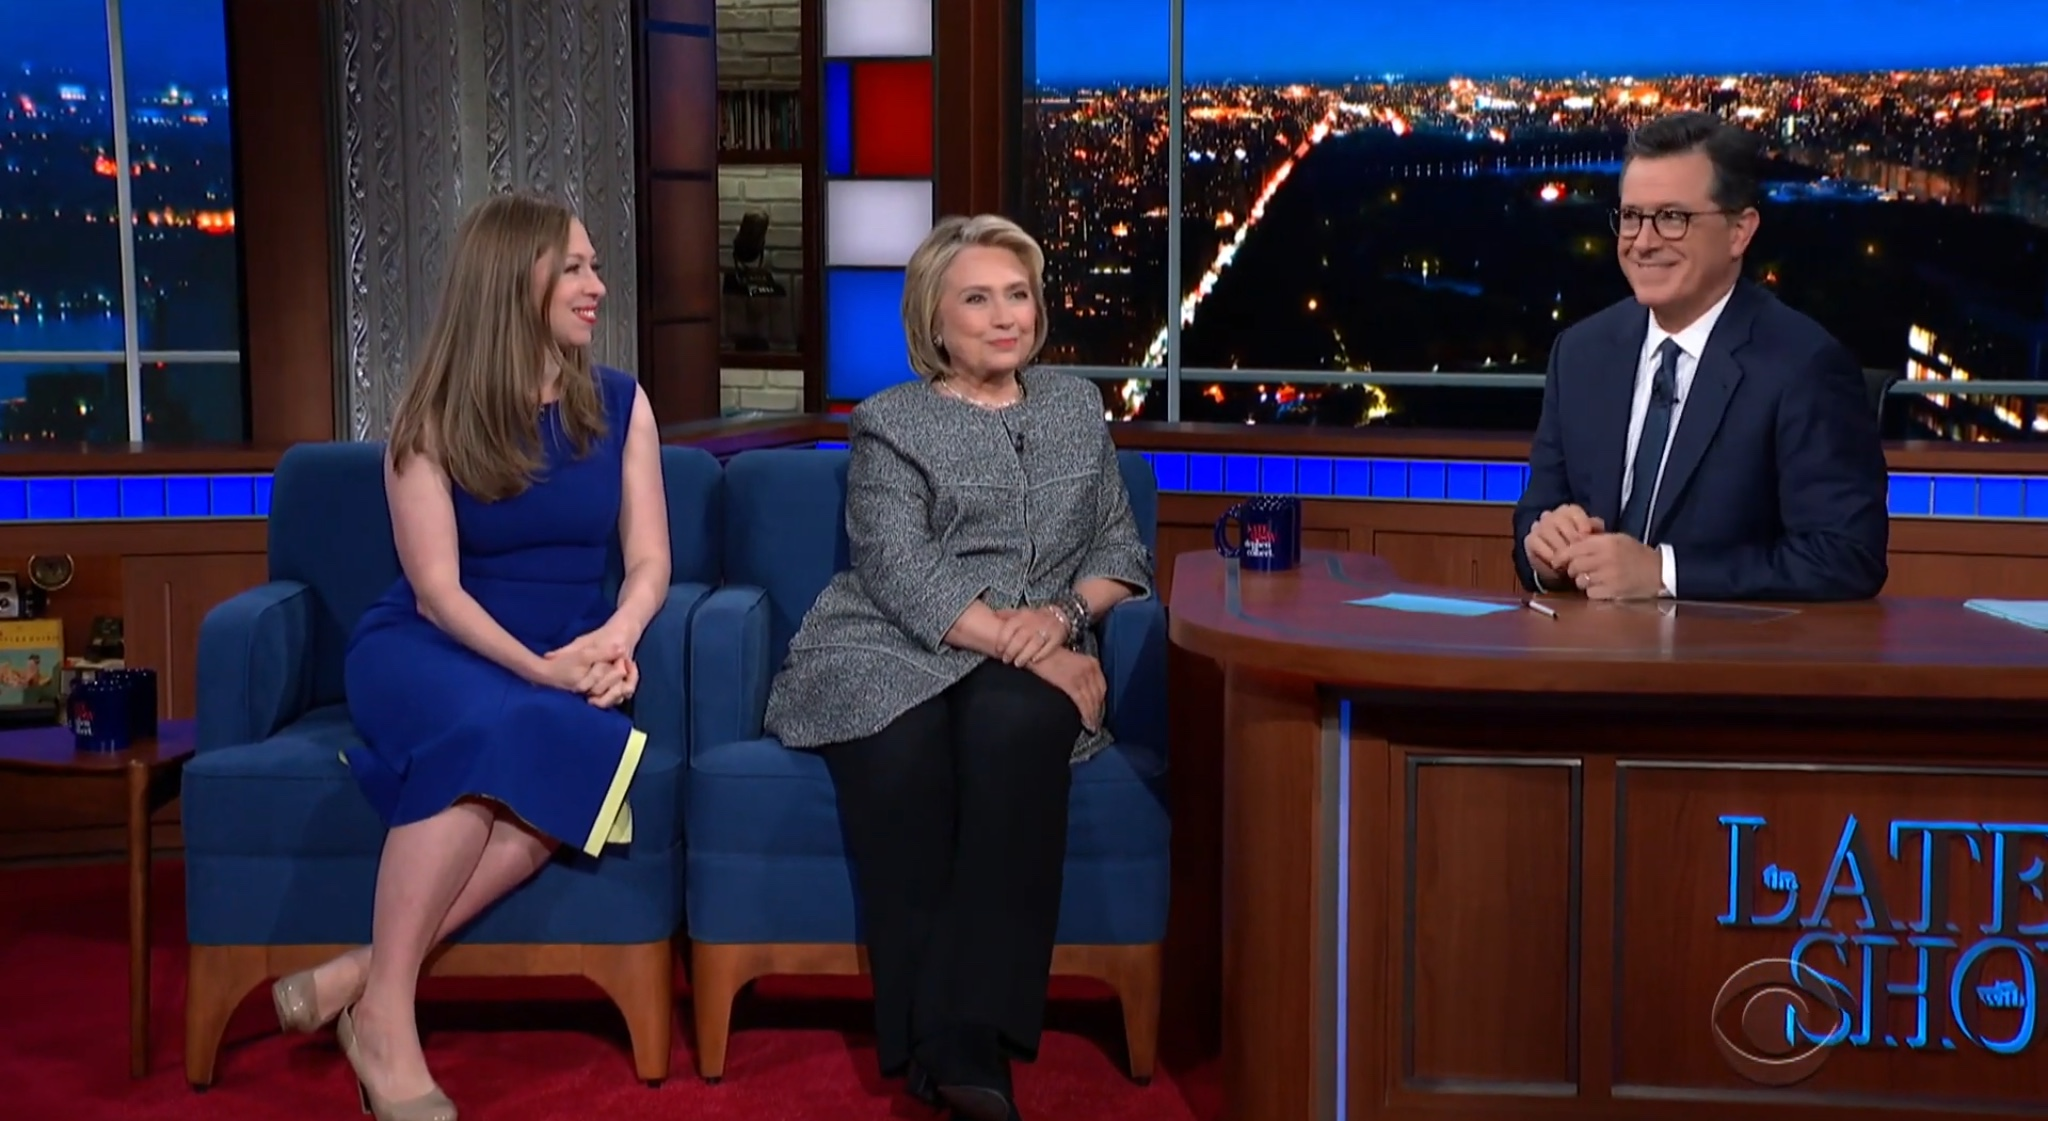 """Hillary Clinton and Chelsea Clinton make an appearance on """"The Late Show with Stephen Colbert,"""" Sept. 30, 2019. YouTube screenshot"""